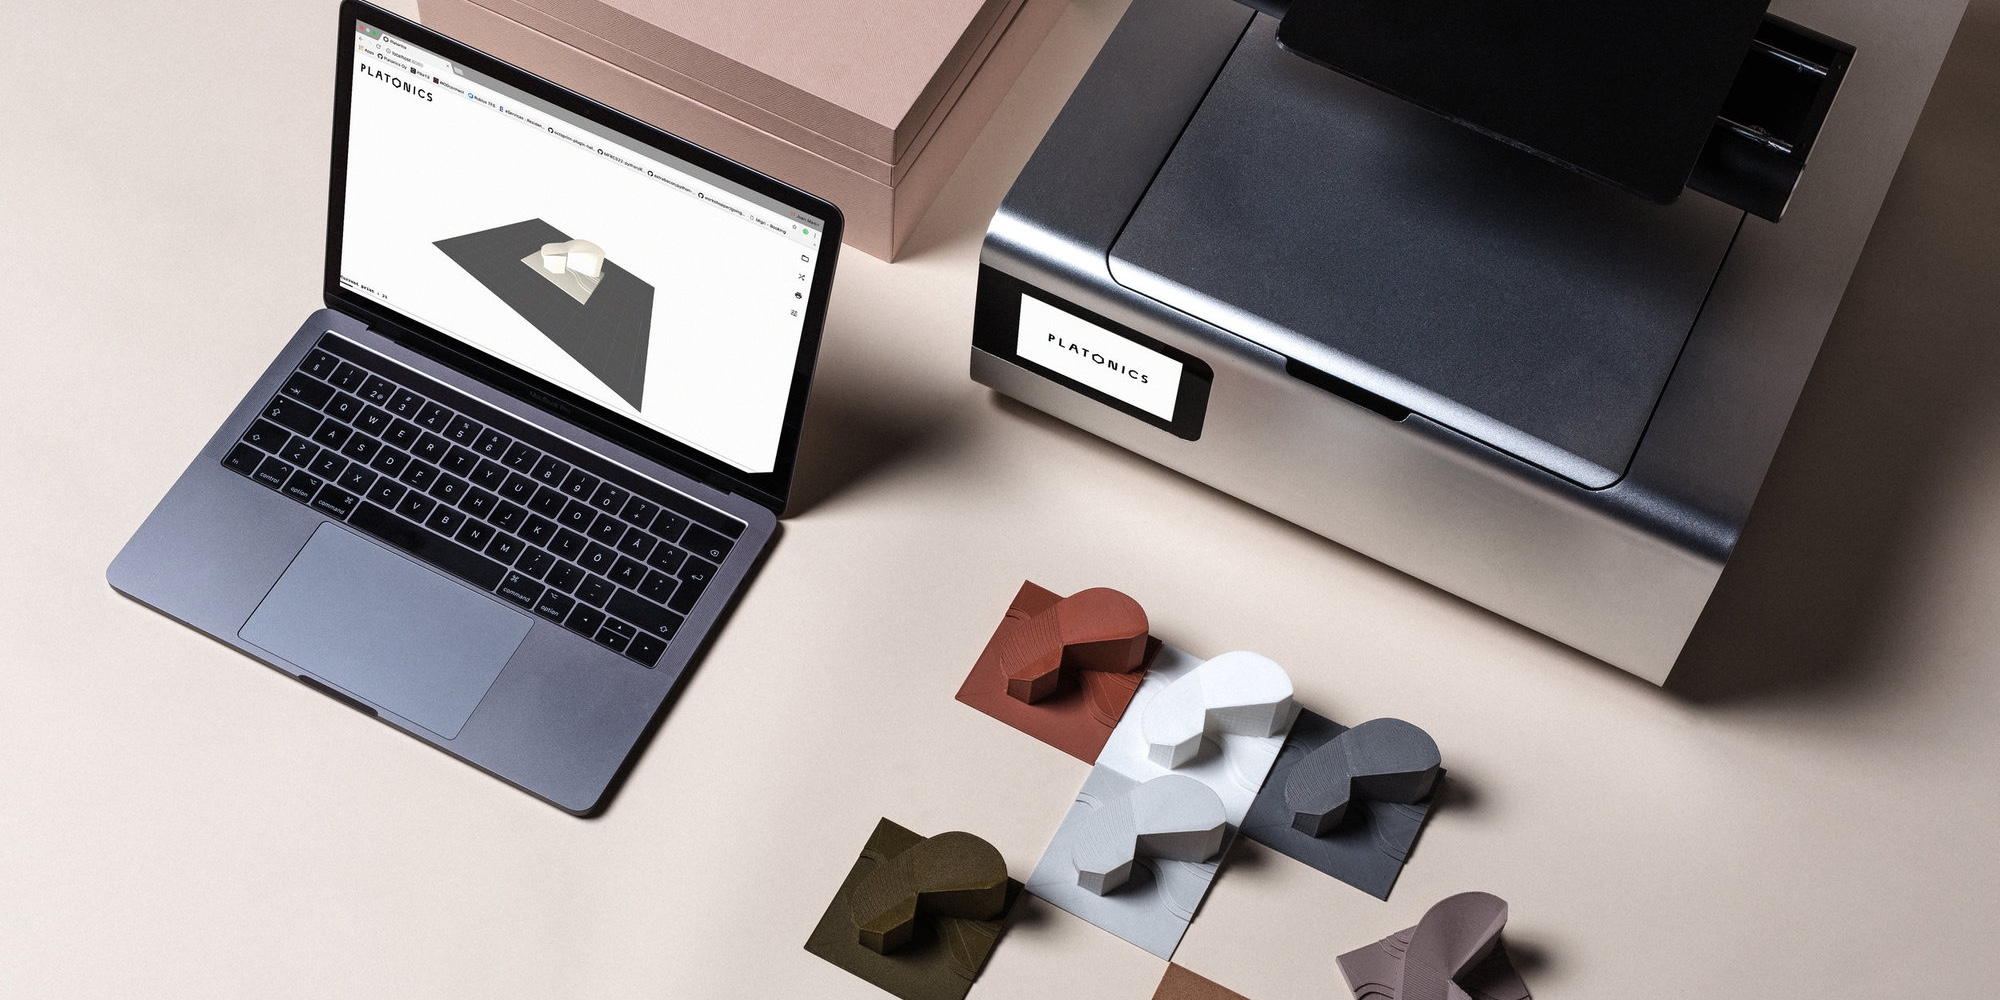 """Platonics Ark is """"the first 3D printer made specifically for architects"""""""